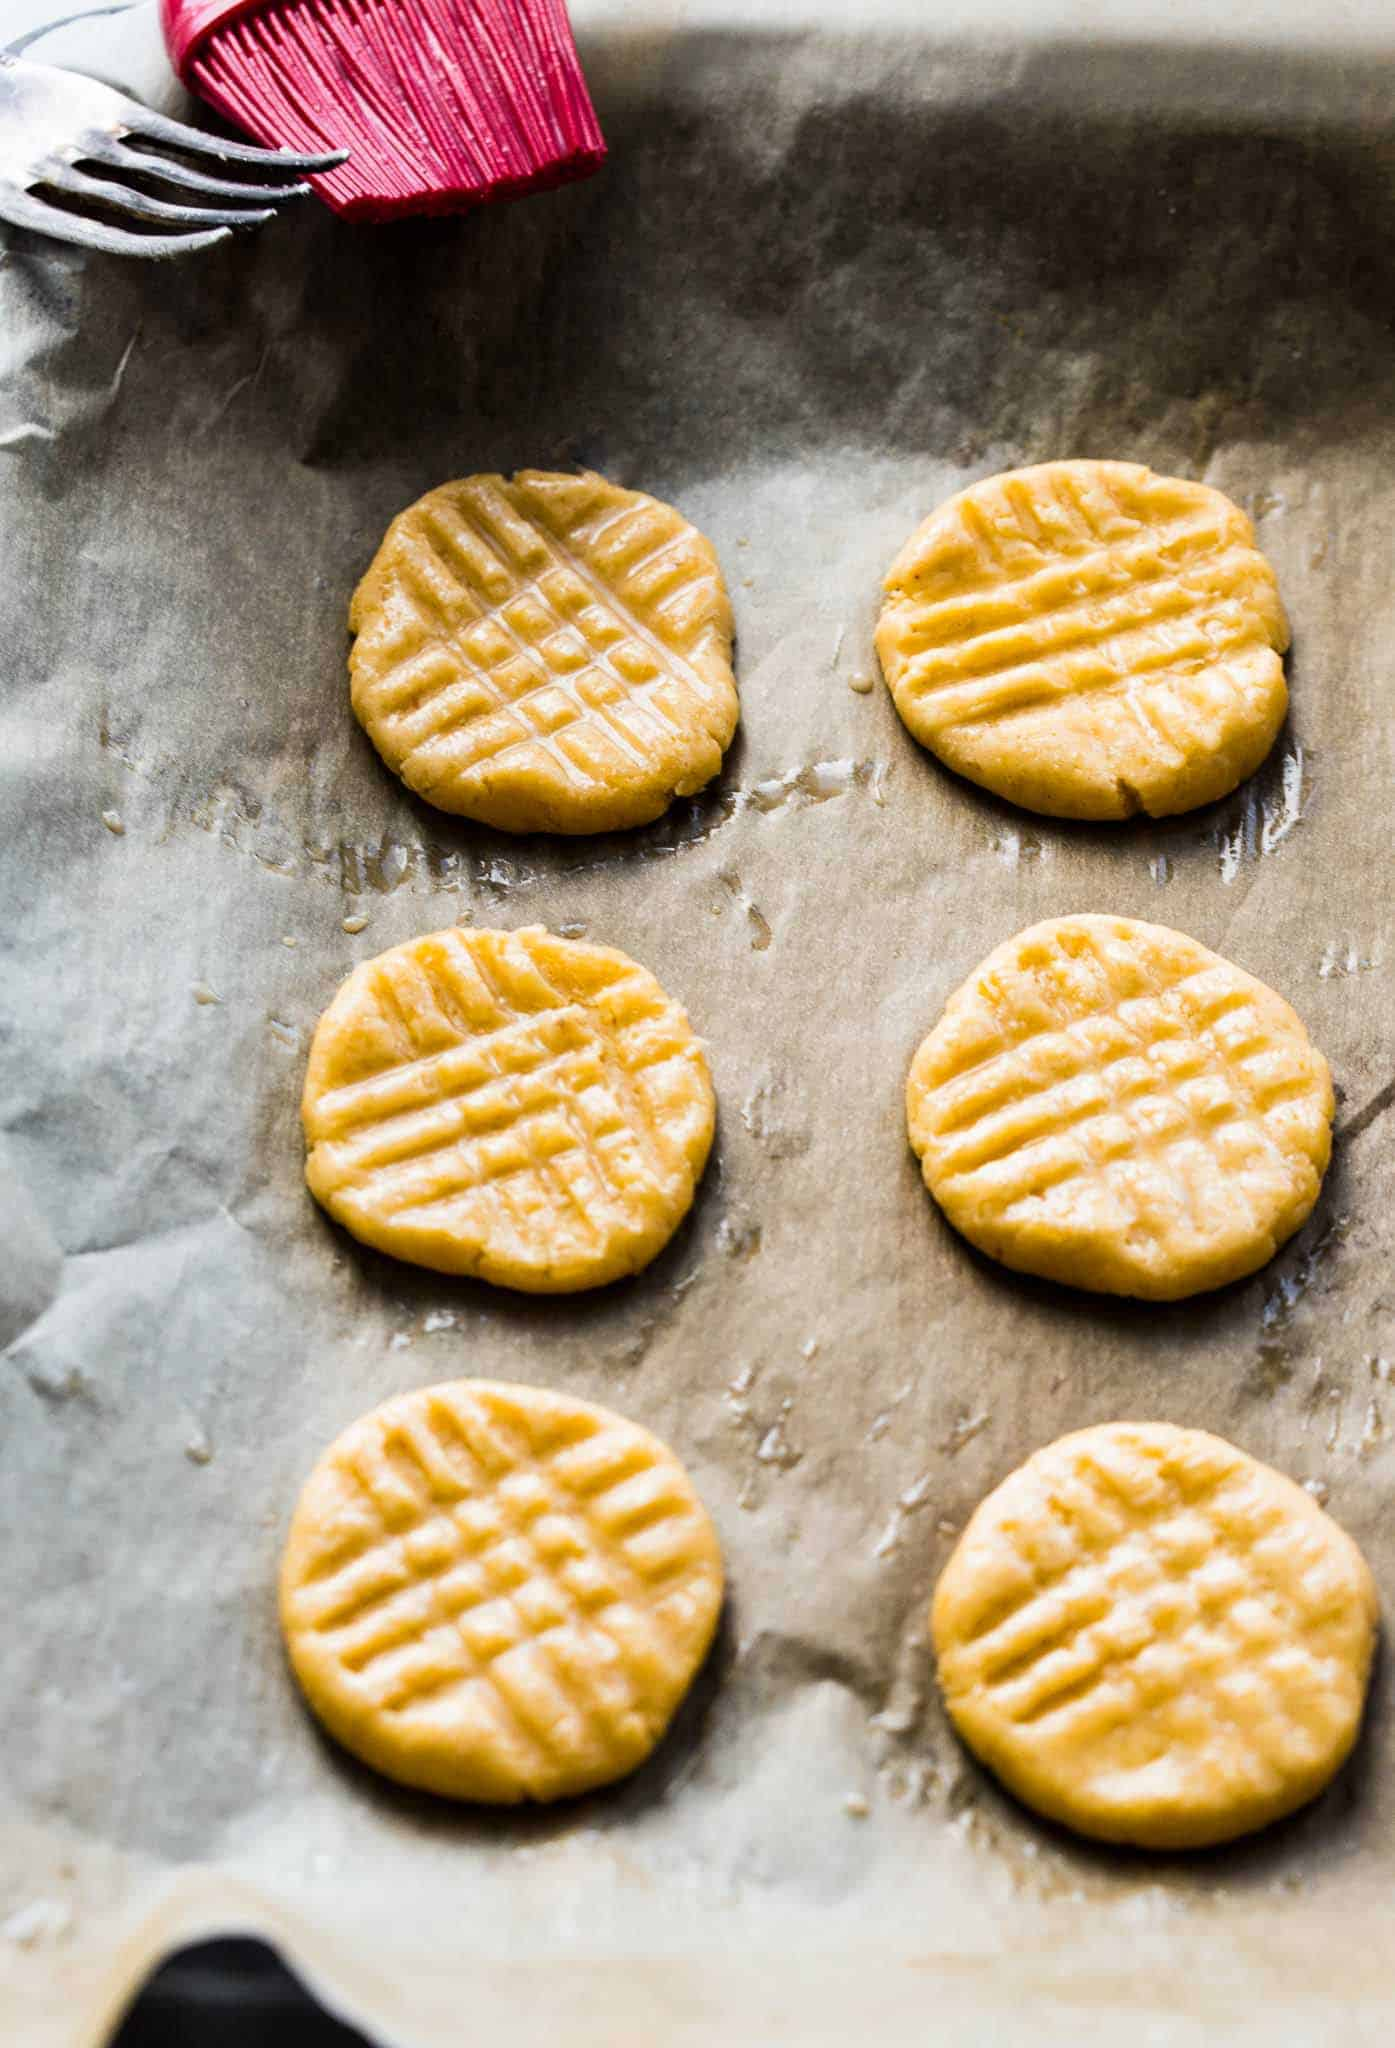 Baking these Parmesan shortbread cookies will fill your house with the most intense baked parmesan aroma. You will start salivating way before they are done and ready to eat. I warned you.